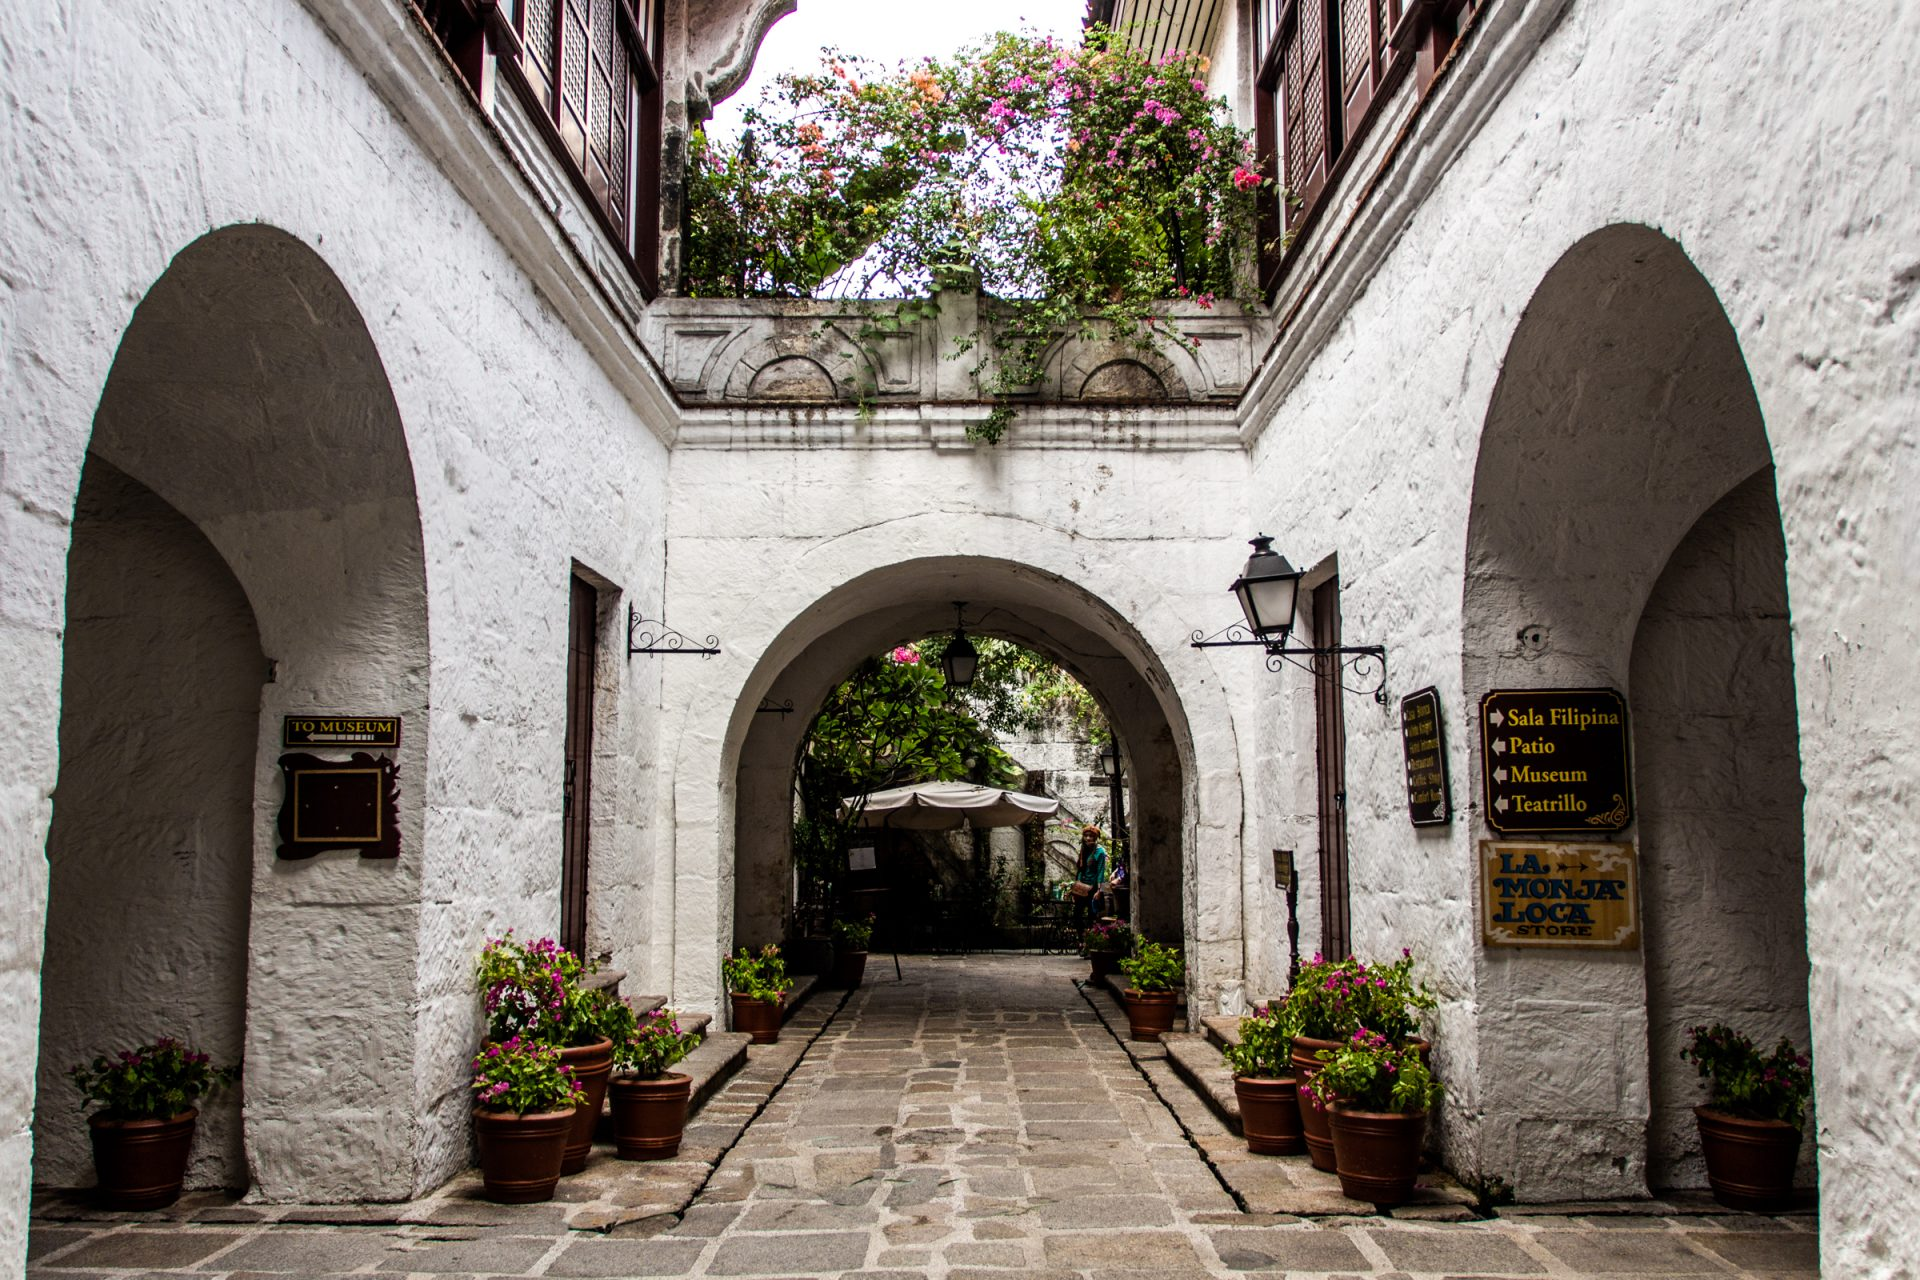 Passage With Potted Plants And Archways